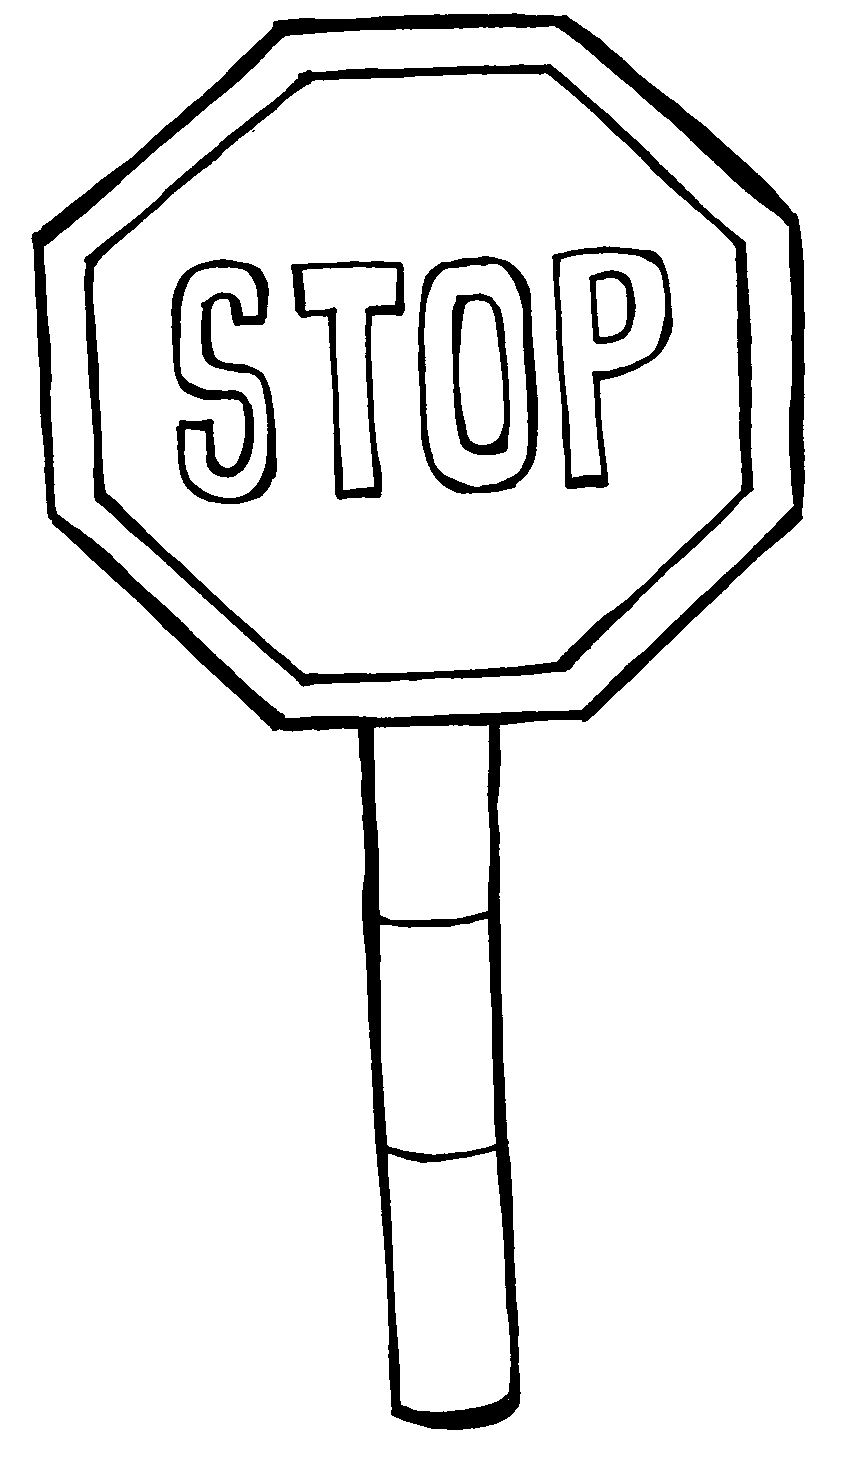 coloring printable road signs coloring pages traffic signs free clipart best clipart road coloring printable signs